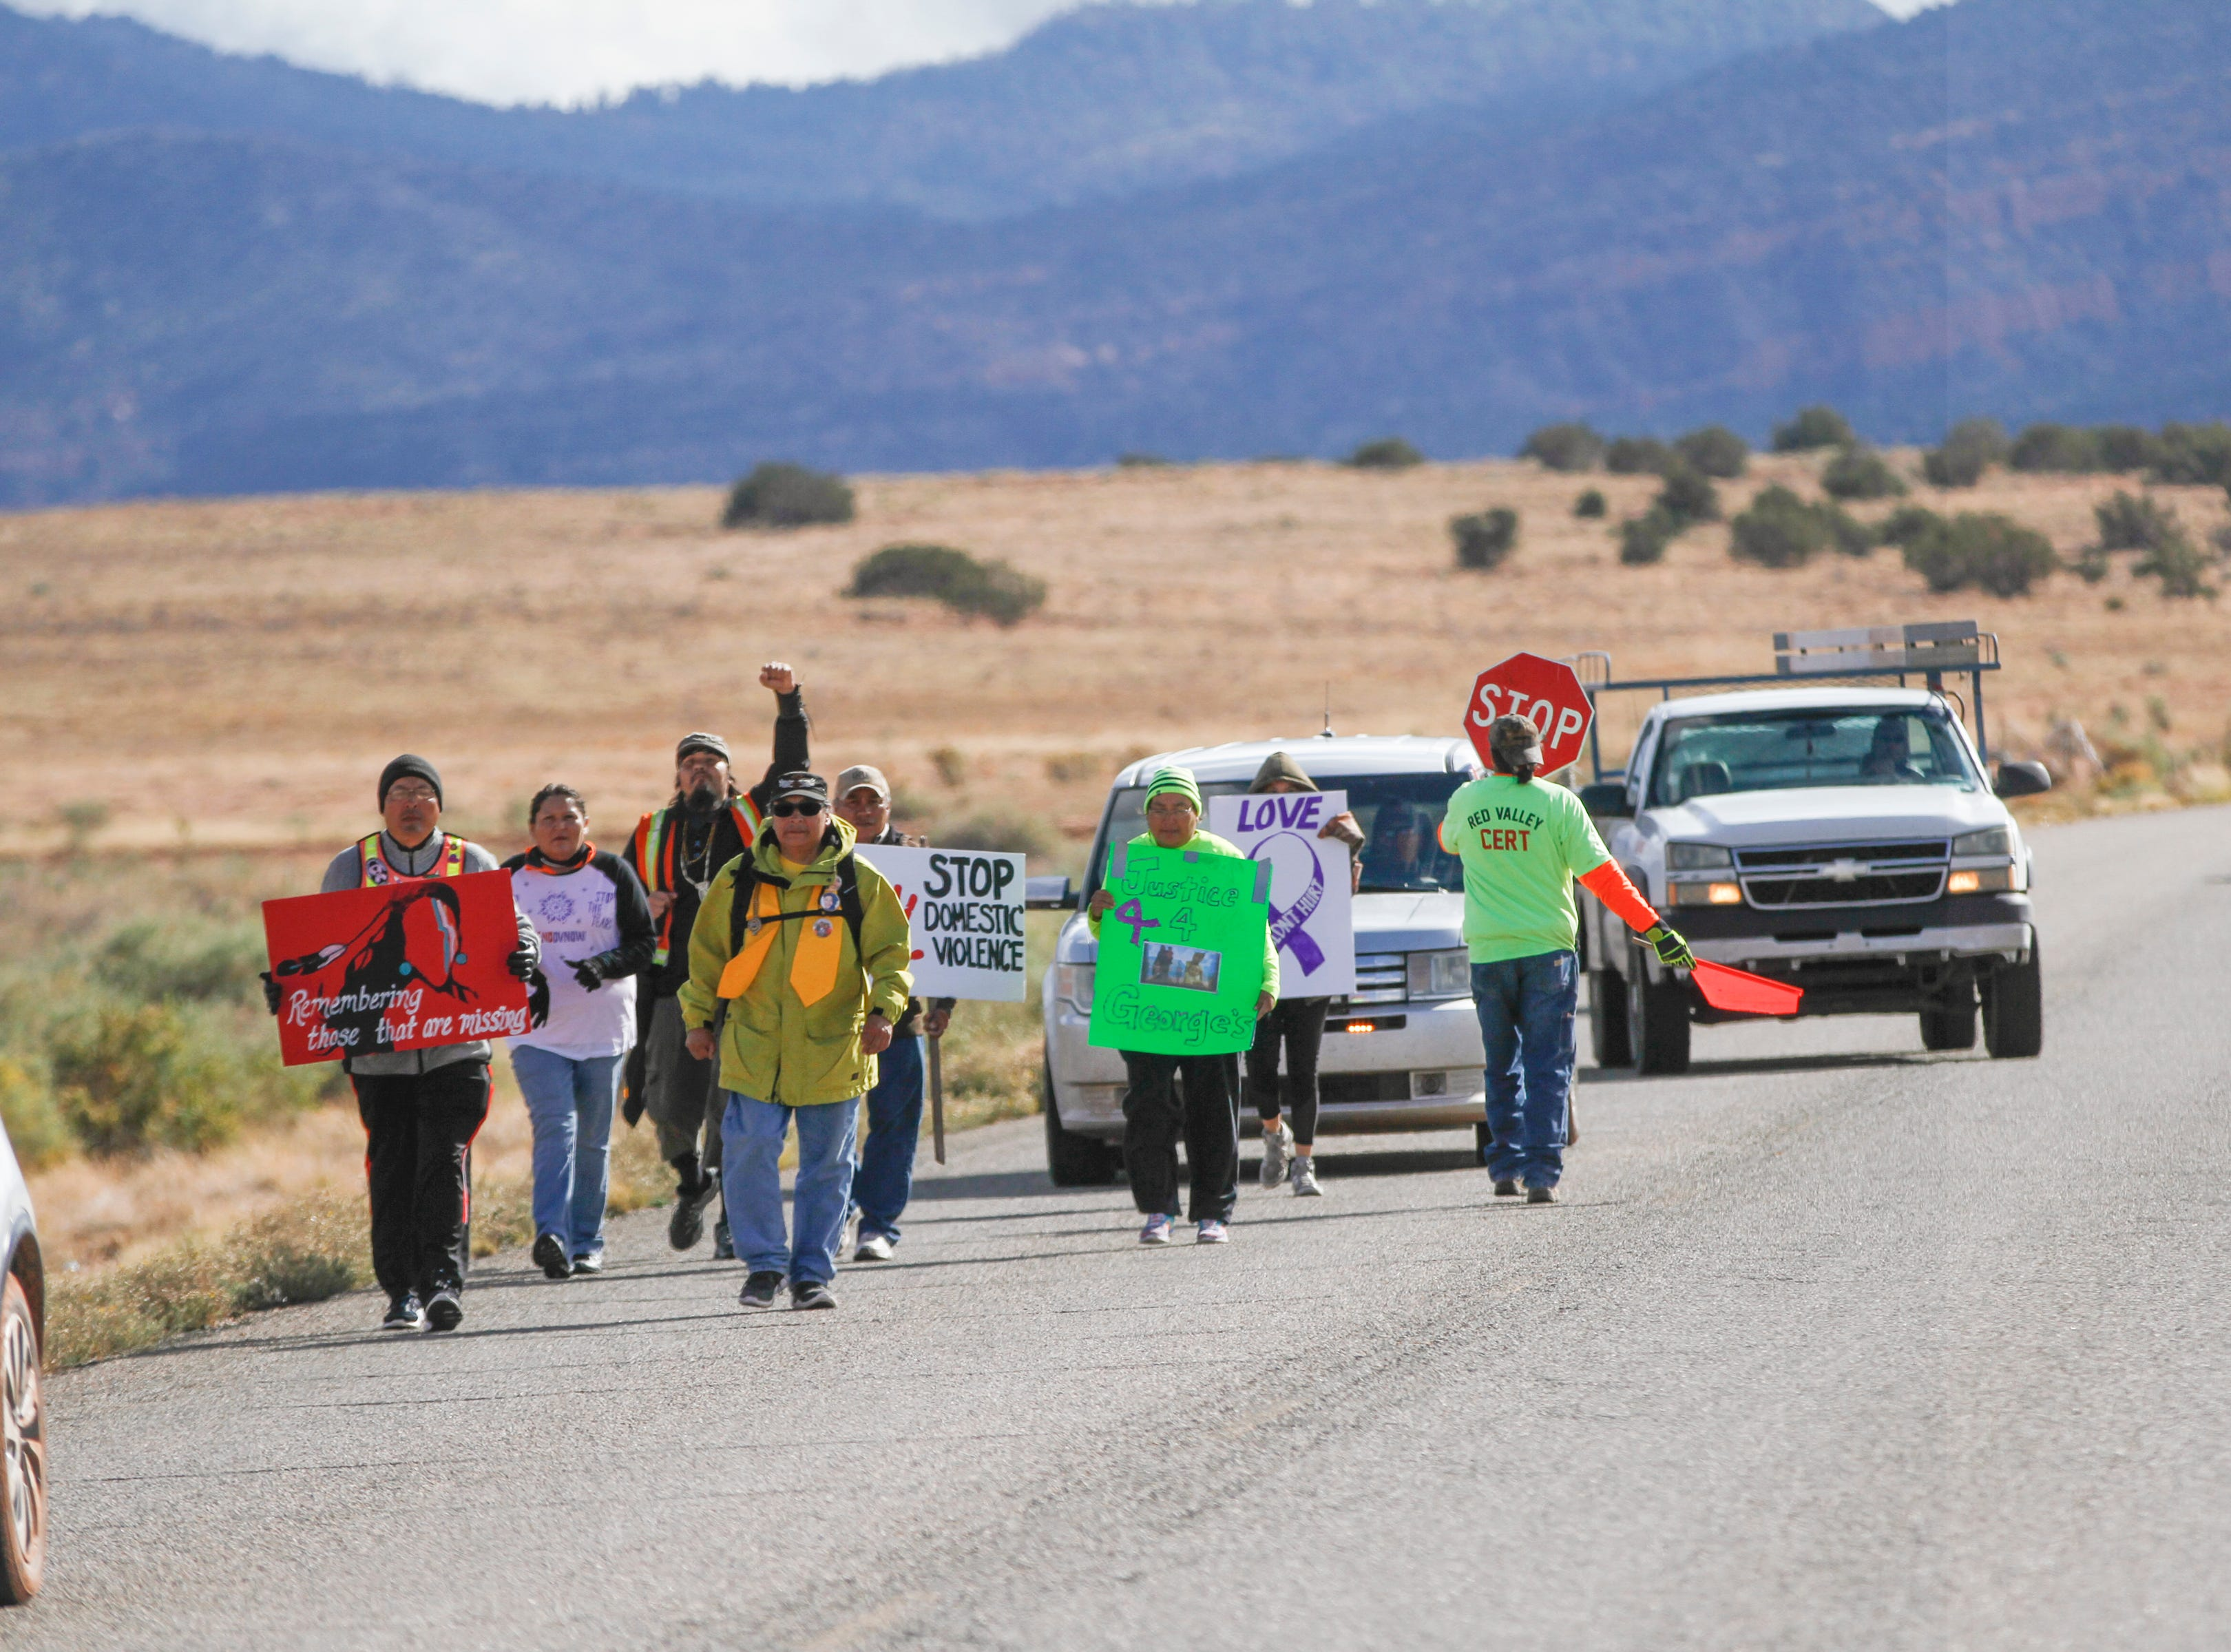 Walking the Healing Path 2018 participants walk along Navajo Route 13 Thursday, Oct. 18, 2018 in Red Valley , Arizona. The walk began on Oct. 13, 2018 in Window Rock, Arizona and they will conclude their route today, Saturday, Oct. 20, 2018 at the Phil L. Thomas Performing Arts Center in Shiprock.